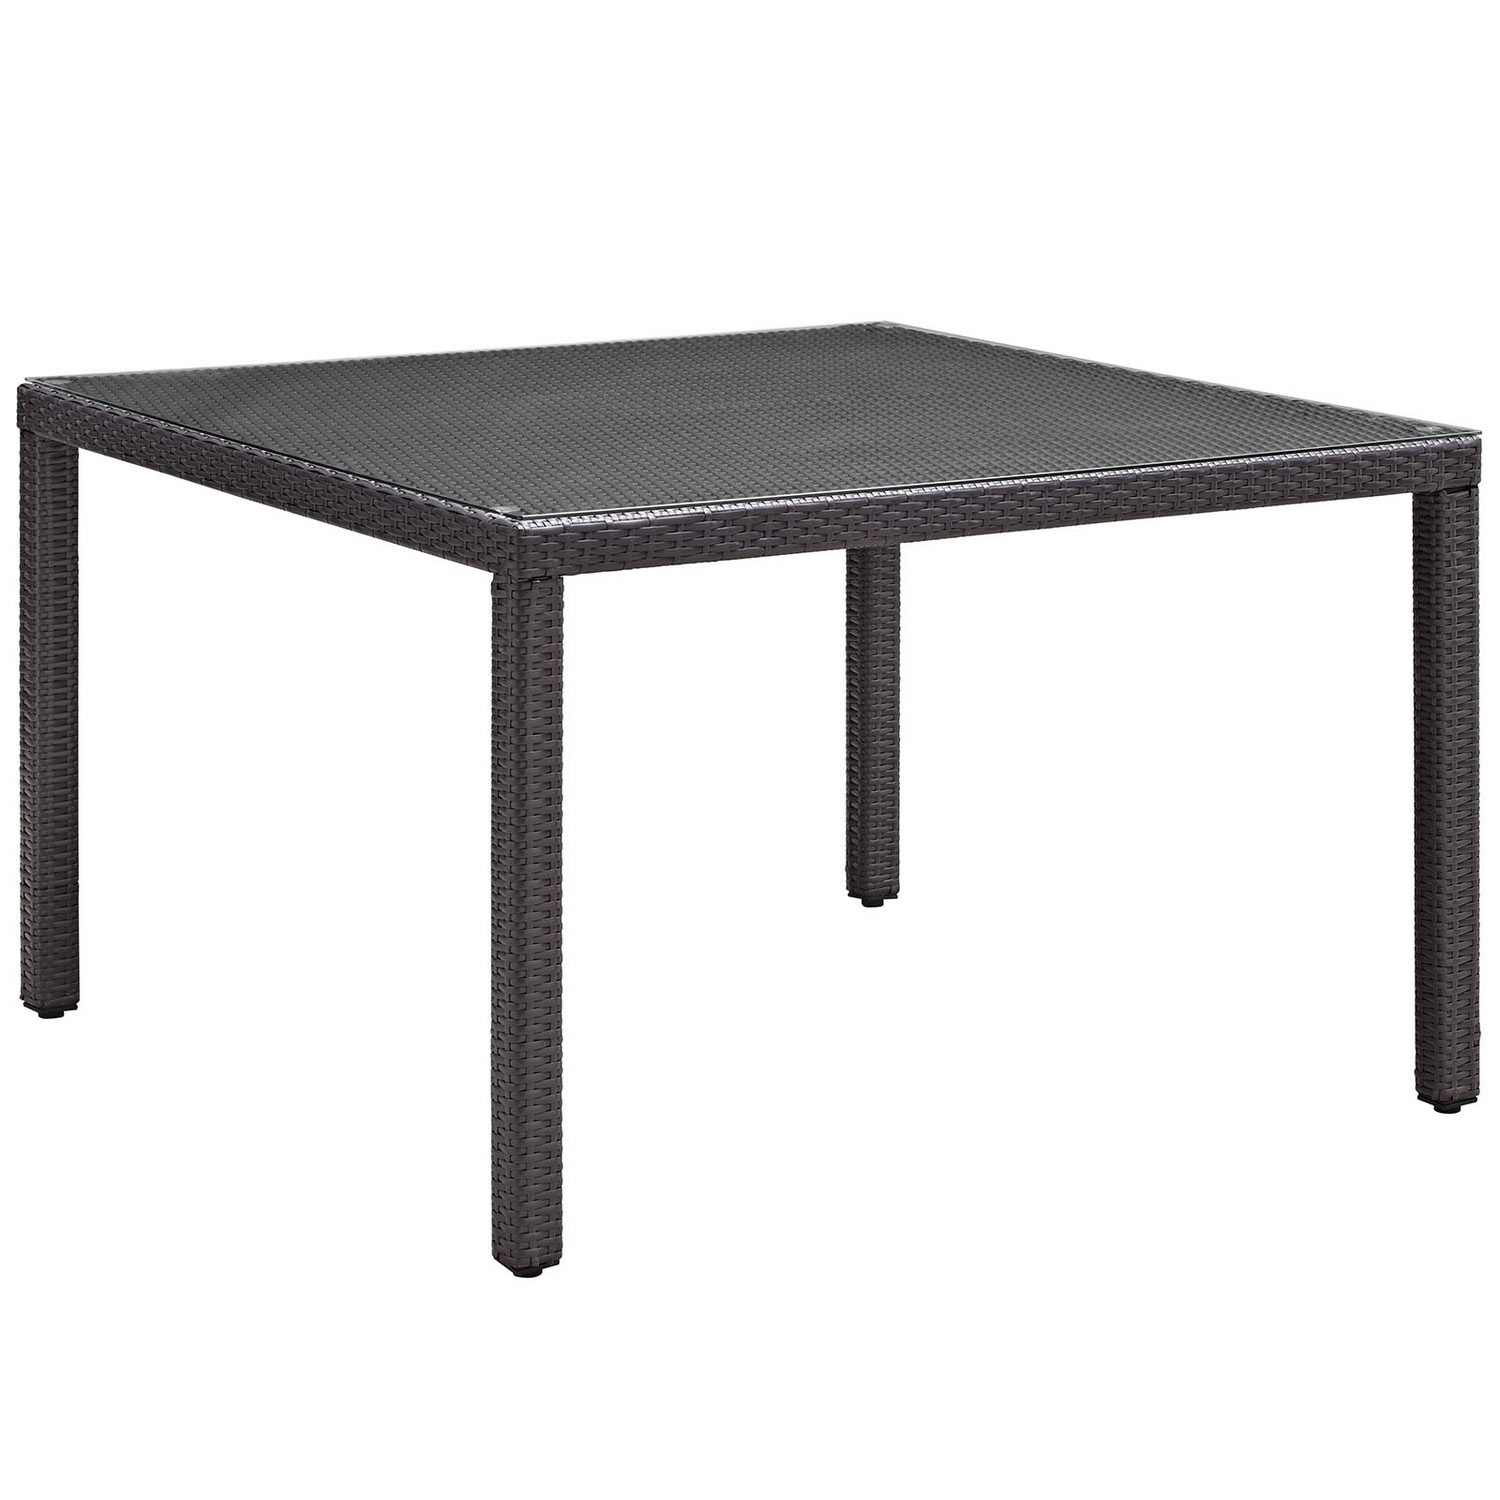 Modway Convene 47-inch Square Outdoor Patio Glass Top Dining Table - Espresso